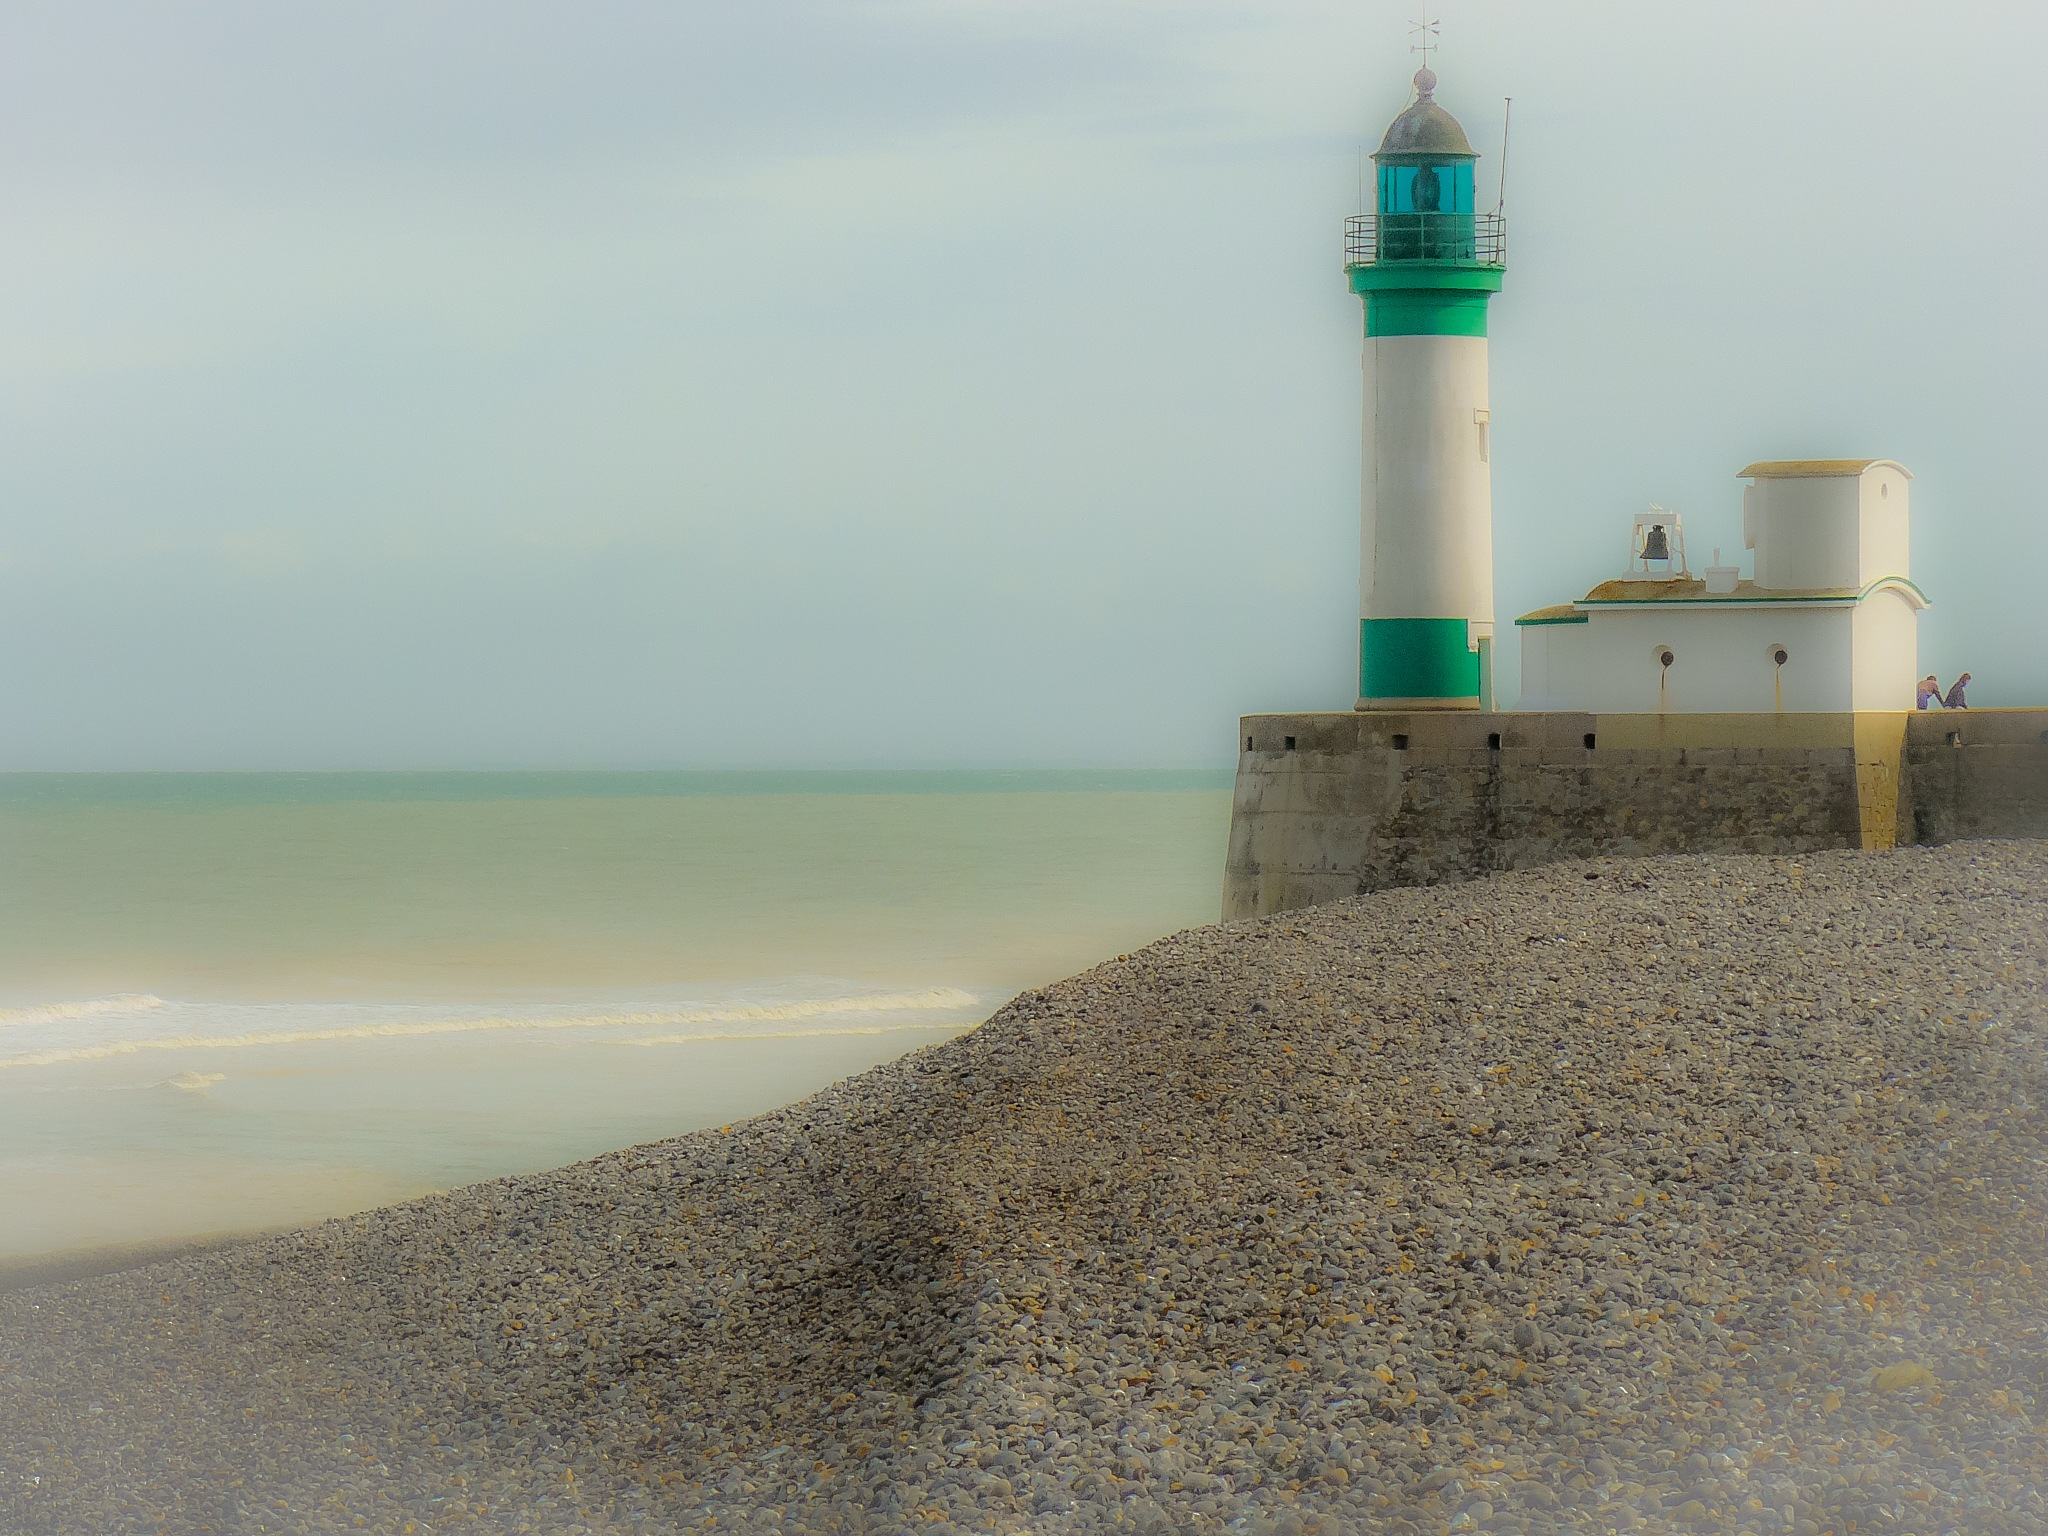 lighthouse France by Paul Geutjes